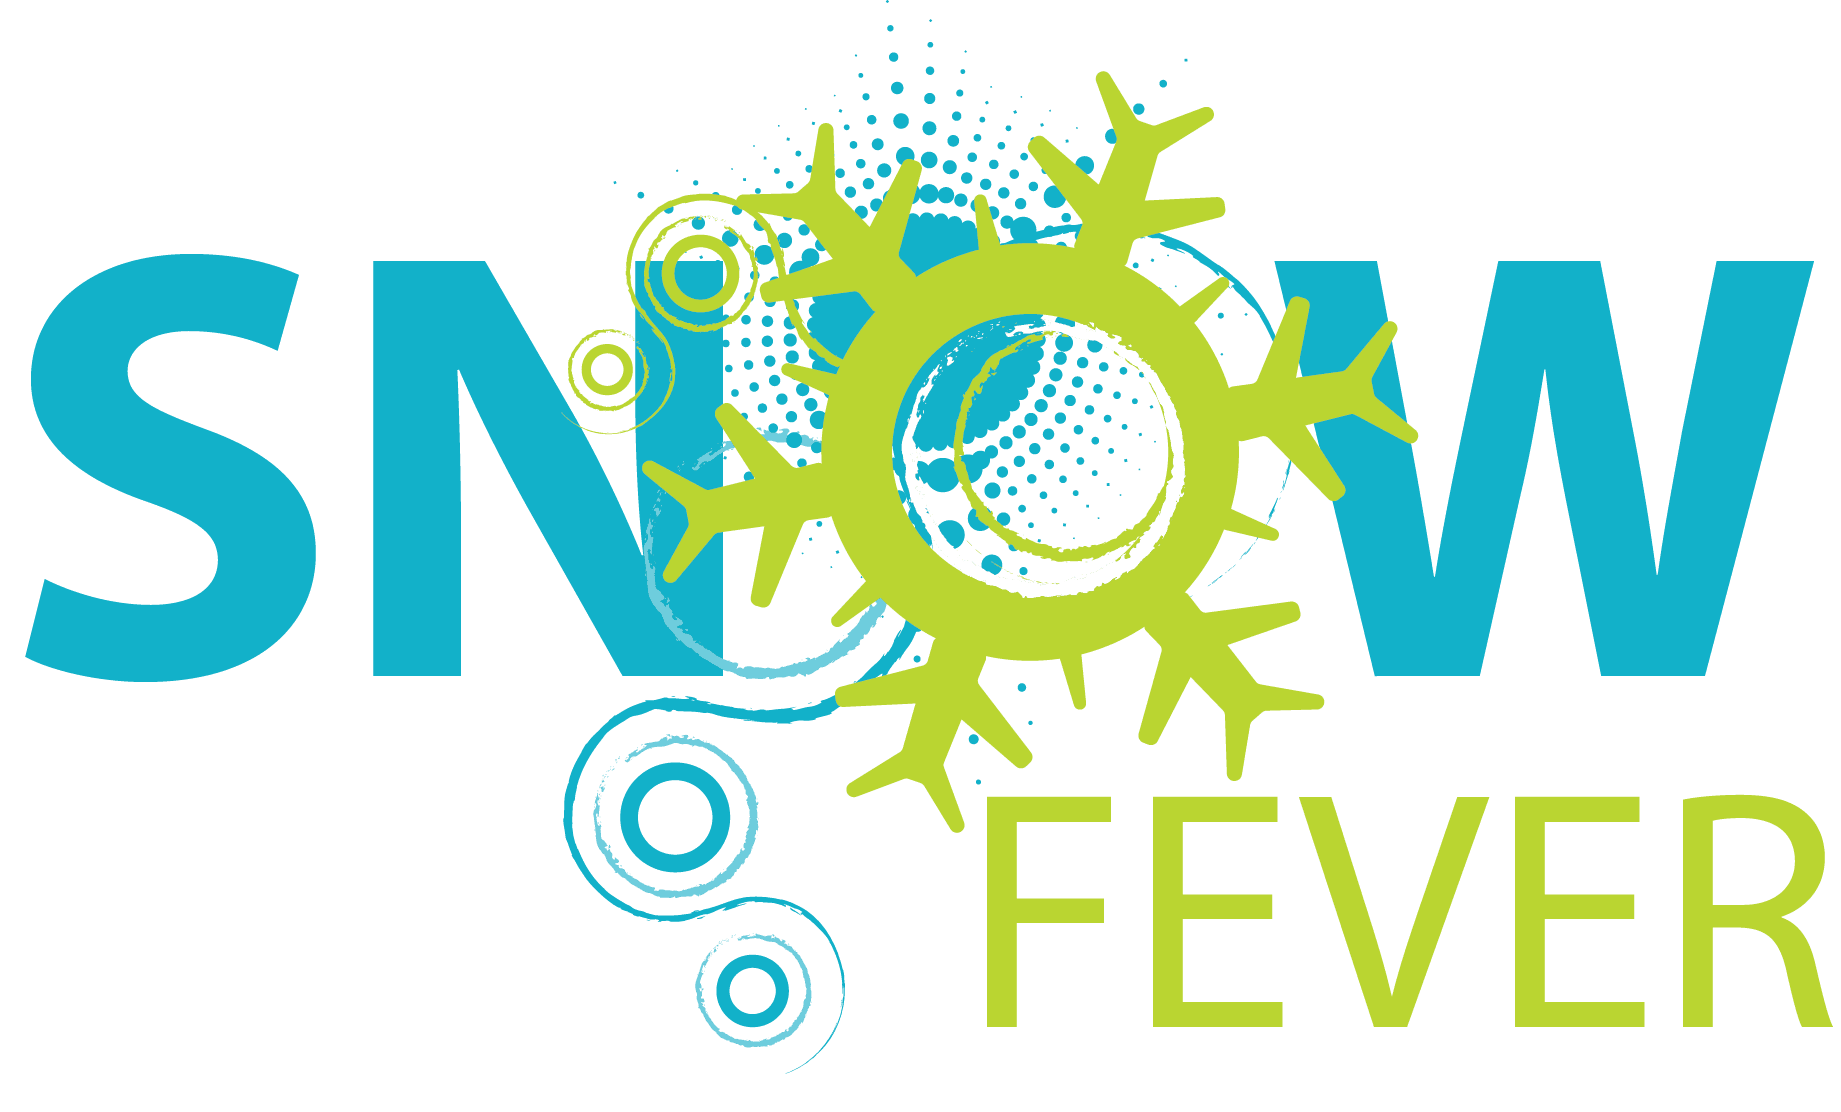 Snow Fever logo